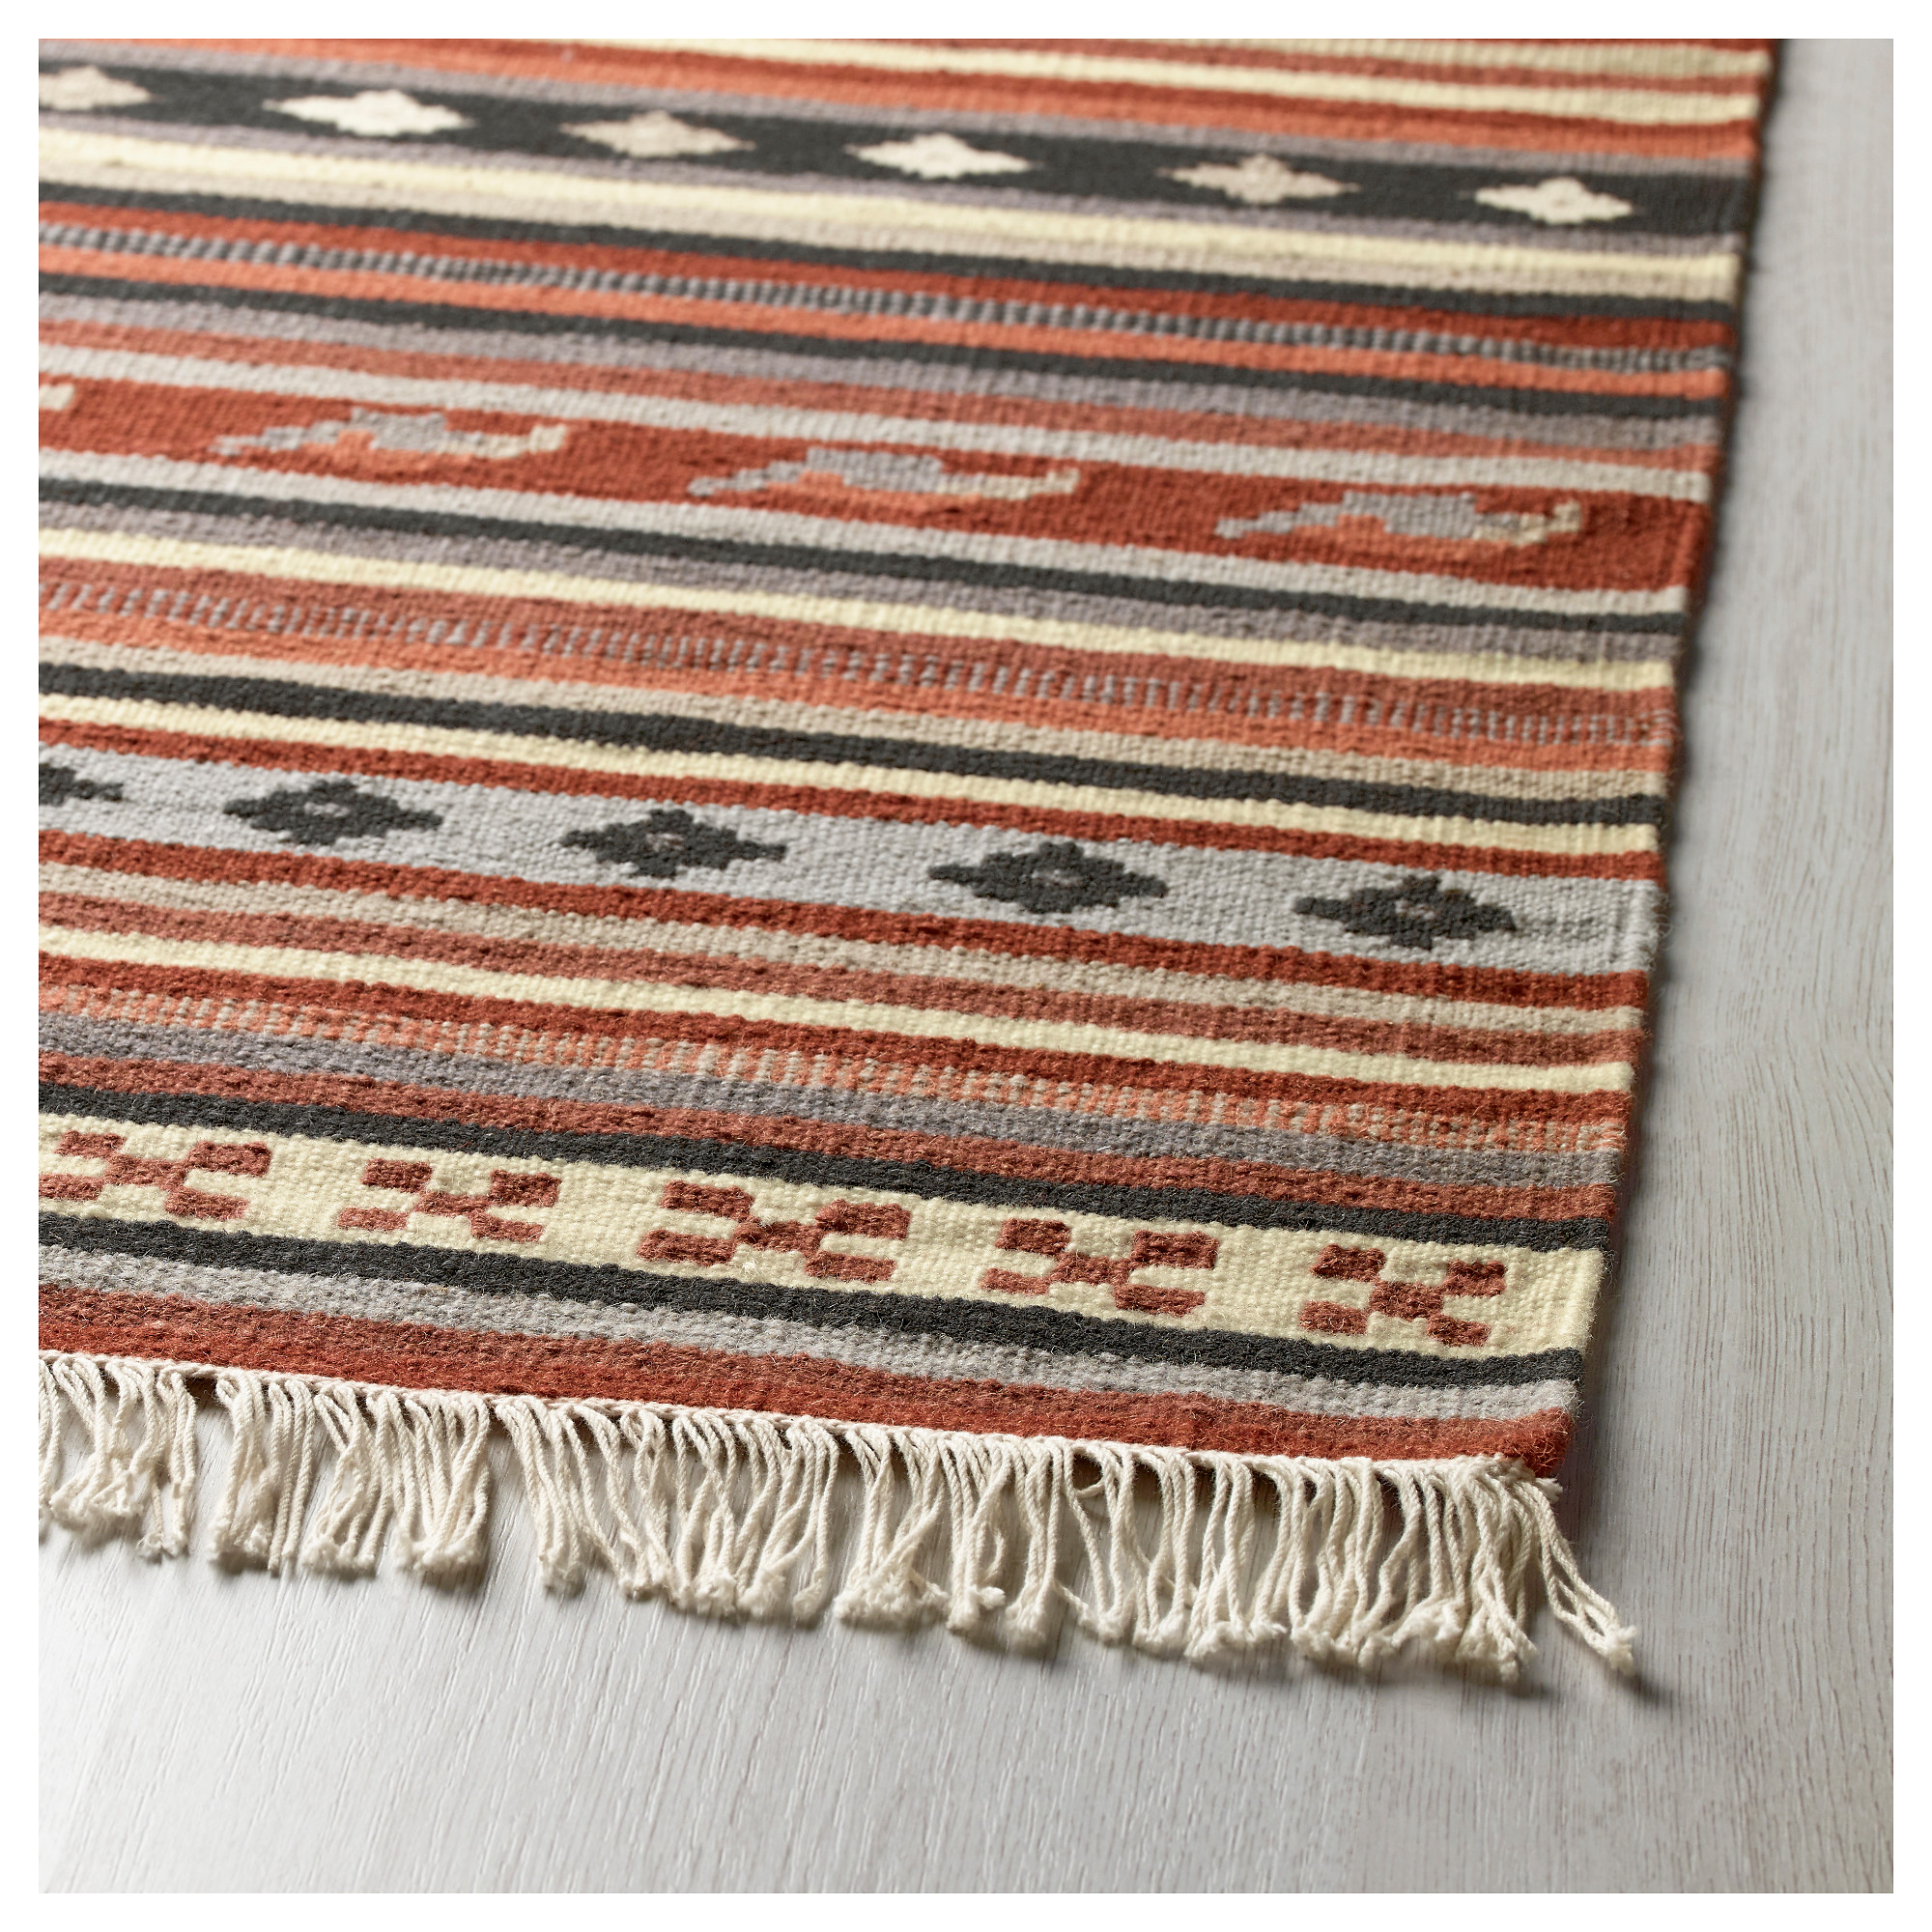 Ikea Teppich 240 Ikea Kattrup Rug Flatwoven Handwoven By Skilled Craftspeople